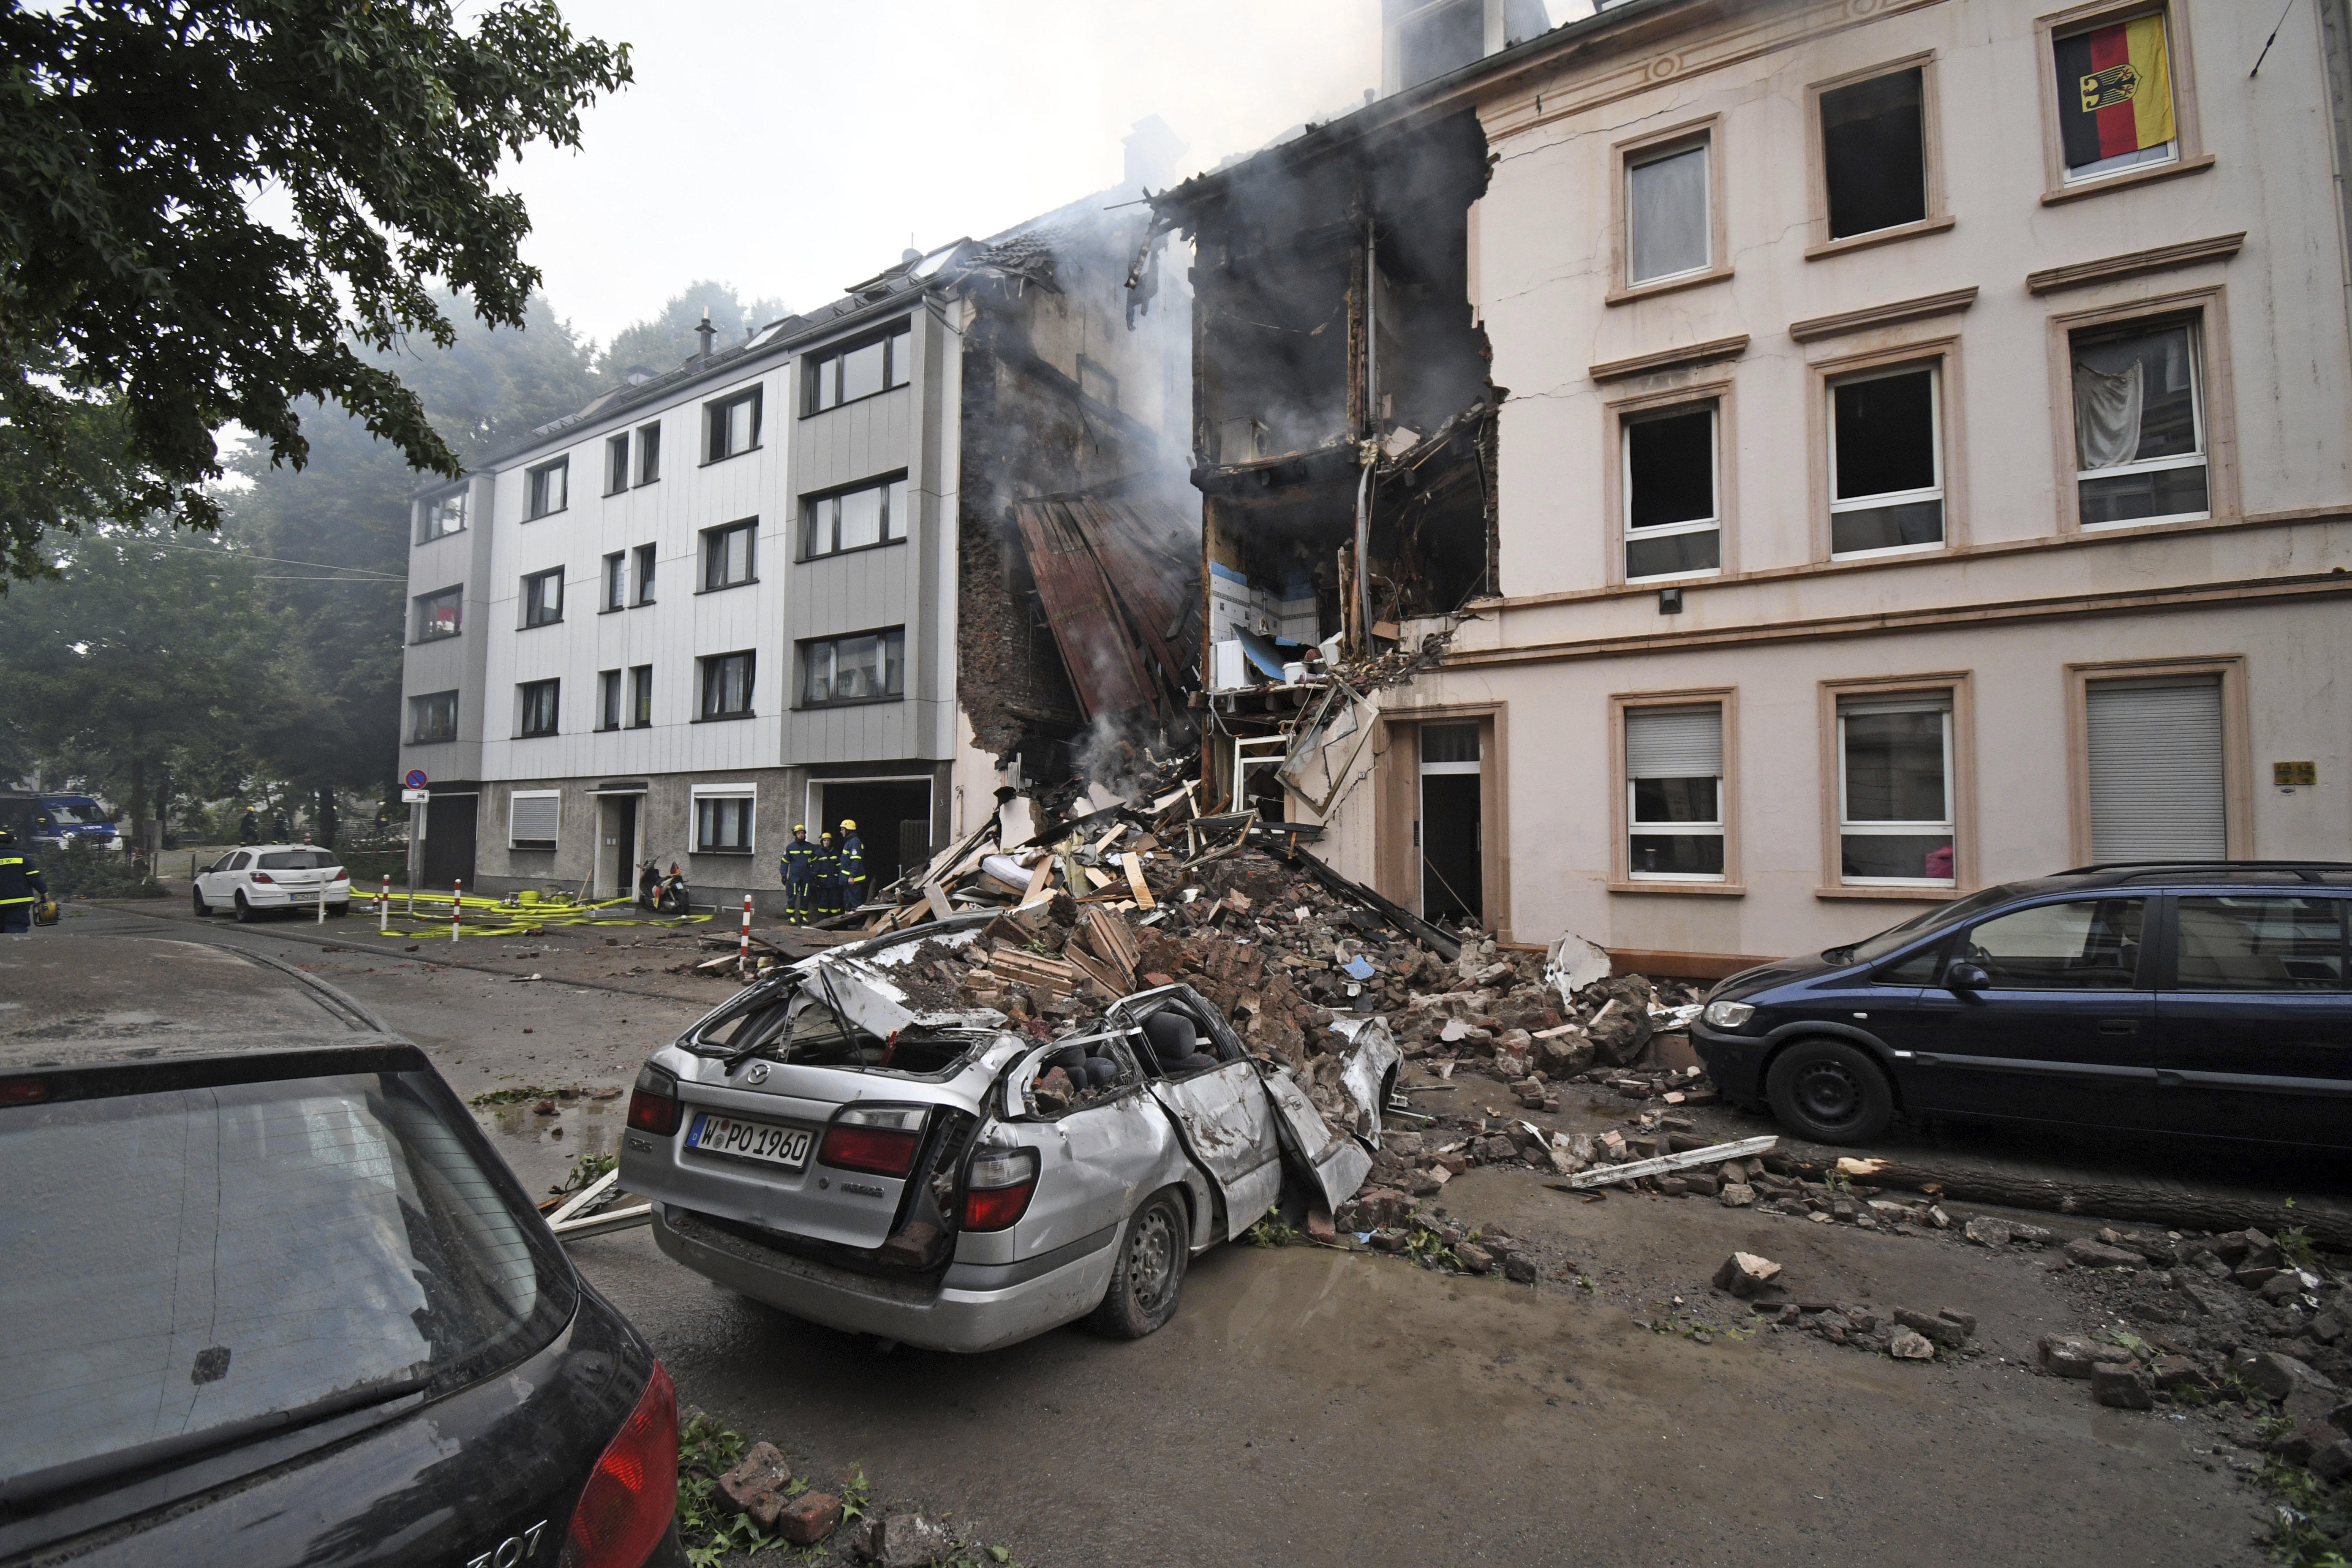 Germany building explosion: Blast in Wuppertal injures 25 ... on rome germany map, bad lippspringe germany map, plochingen germany map, trier germany map, lubbecke germany map, hellenthal germany map, kochel germany map, havixbeck germany map, lengerich germany map, goerlitz germany map, lampertheim germany map, mayence germany map, blankenheim germany map, barmen germany map, erkelenz germany map, donaueschingen germany map, landsberg am lech germany map, ochtrup germany map, colditz germany map,